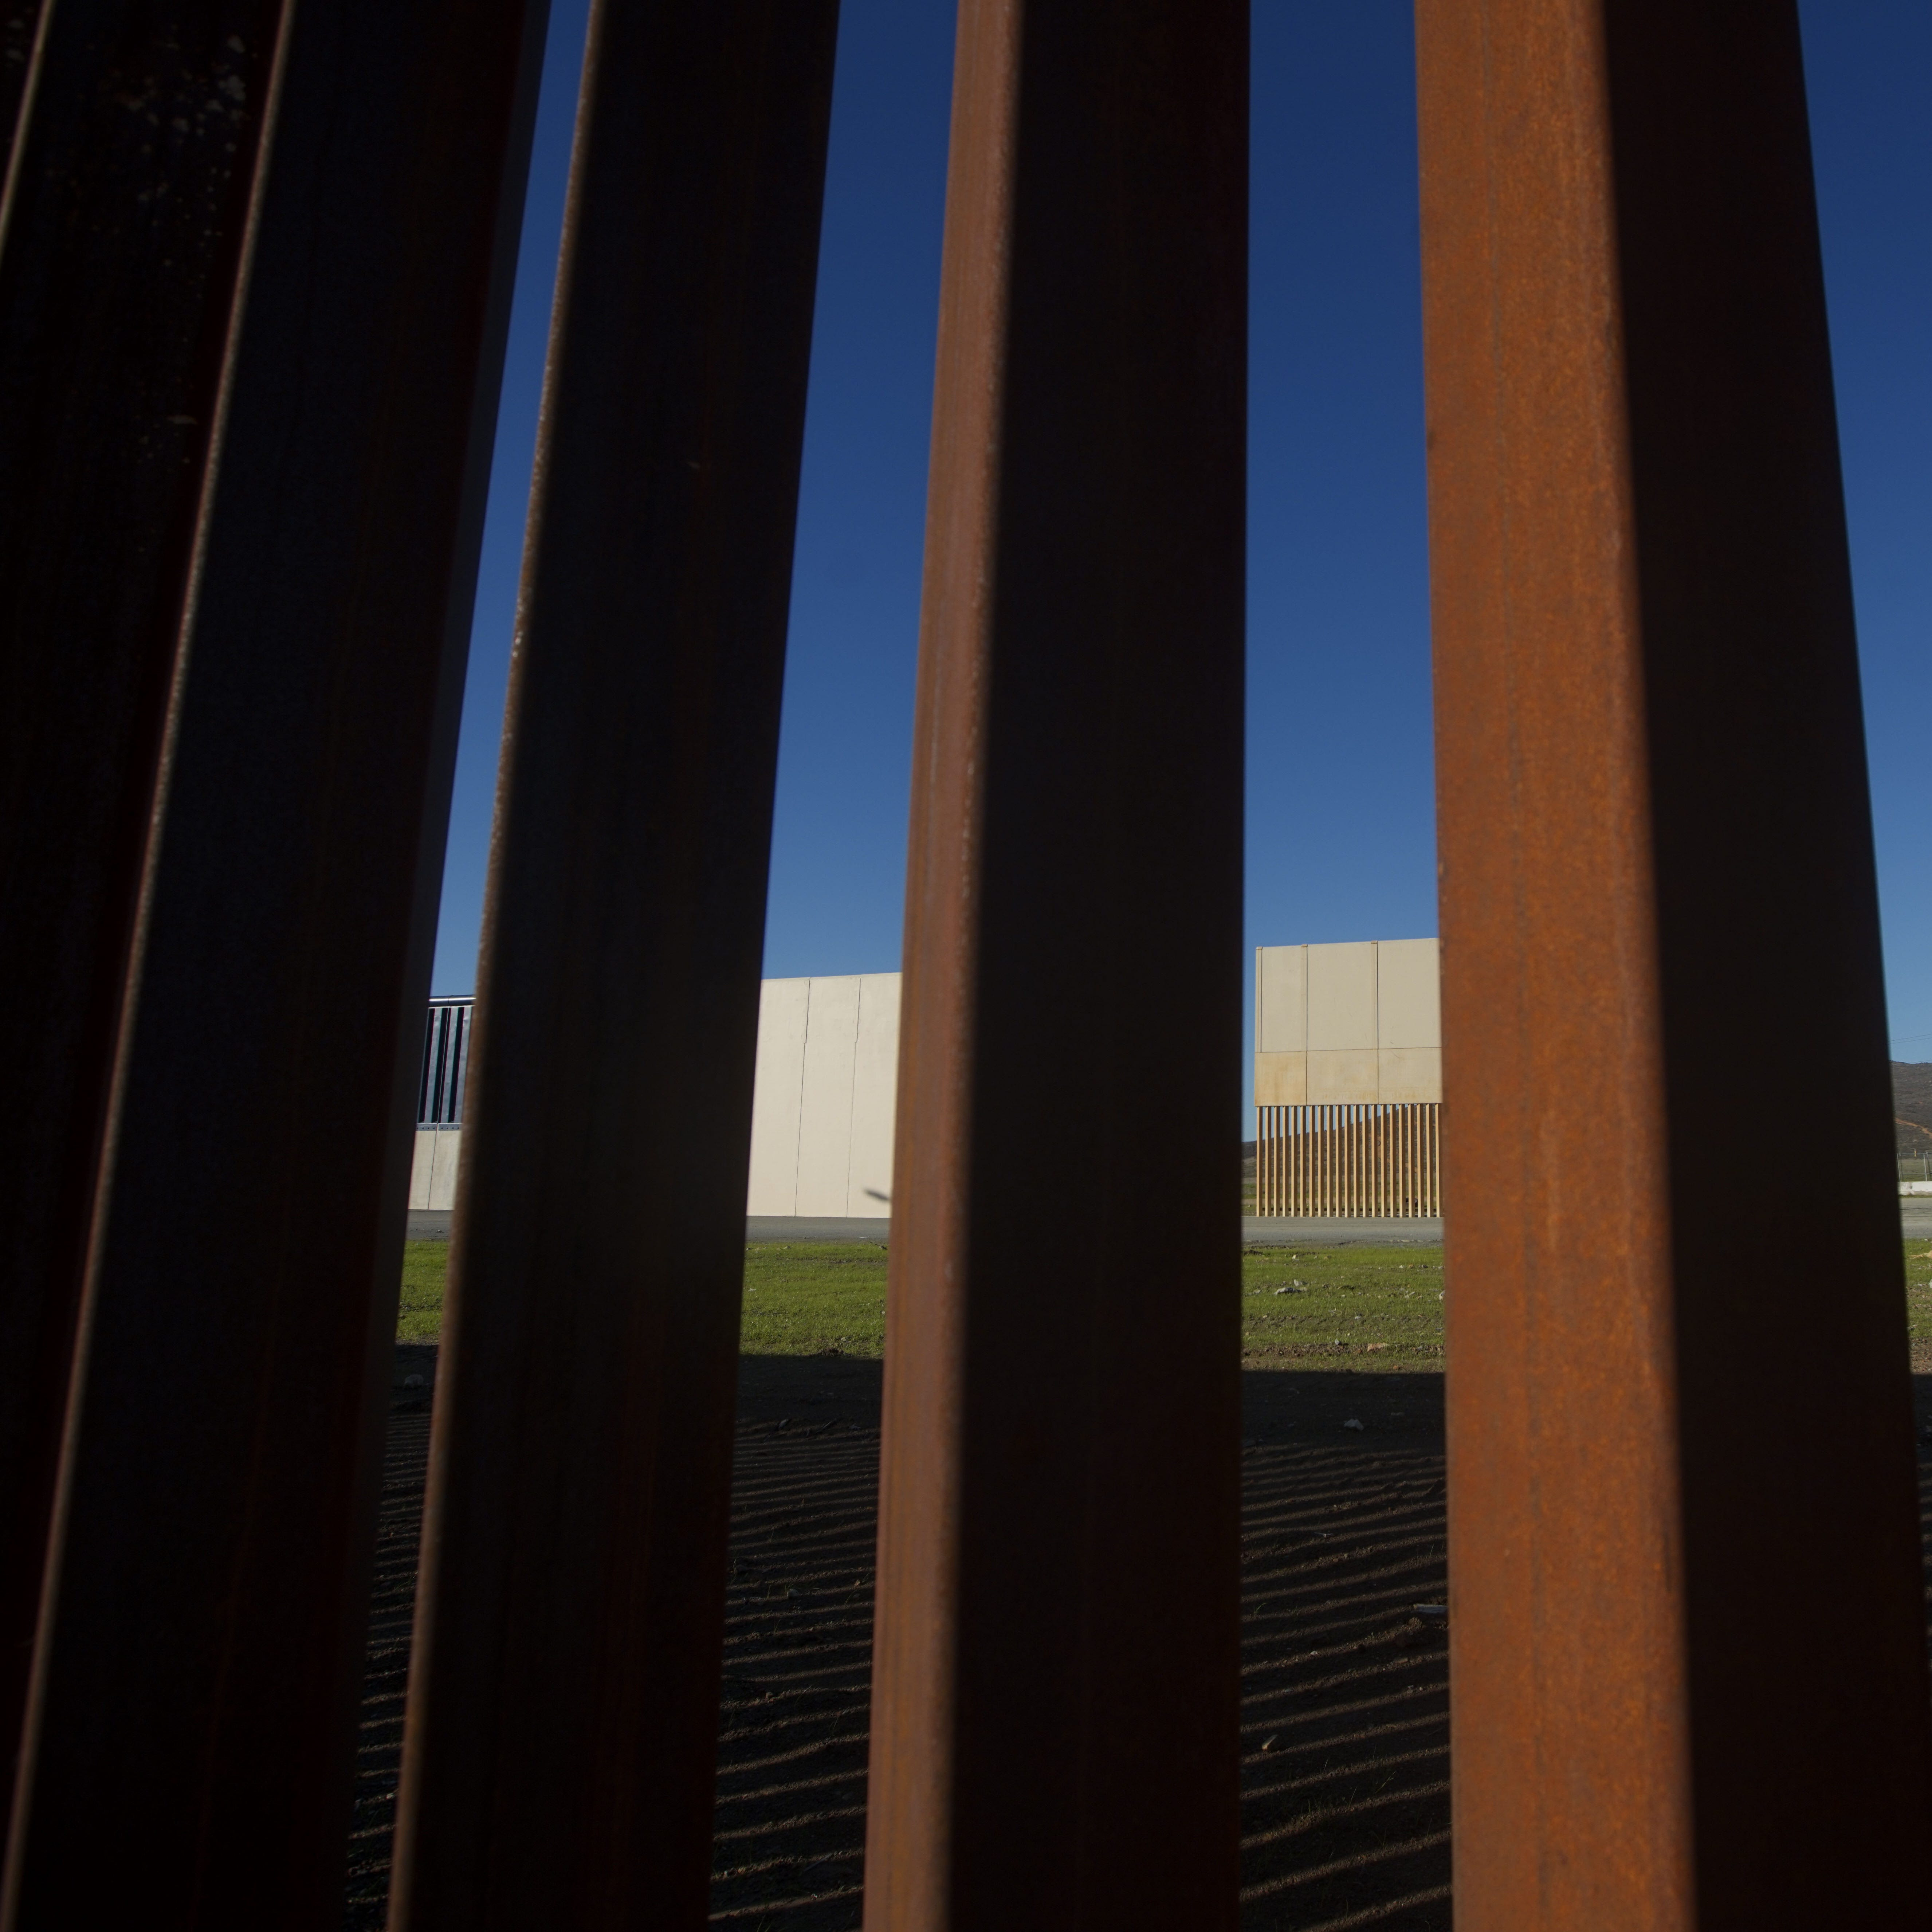 A view of prototype wall  samples looking through the U.S.-Mexico border fence on Jan. 7, 2019 in Tijuana, Mexico.